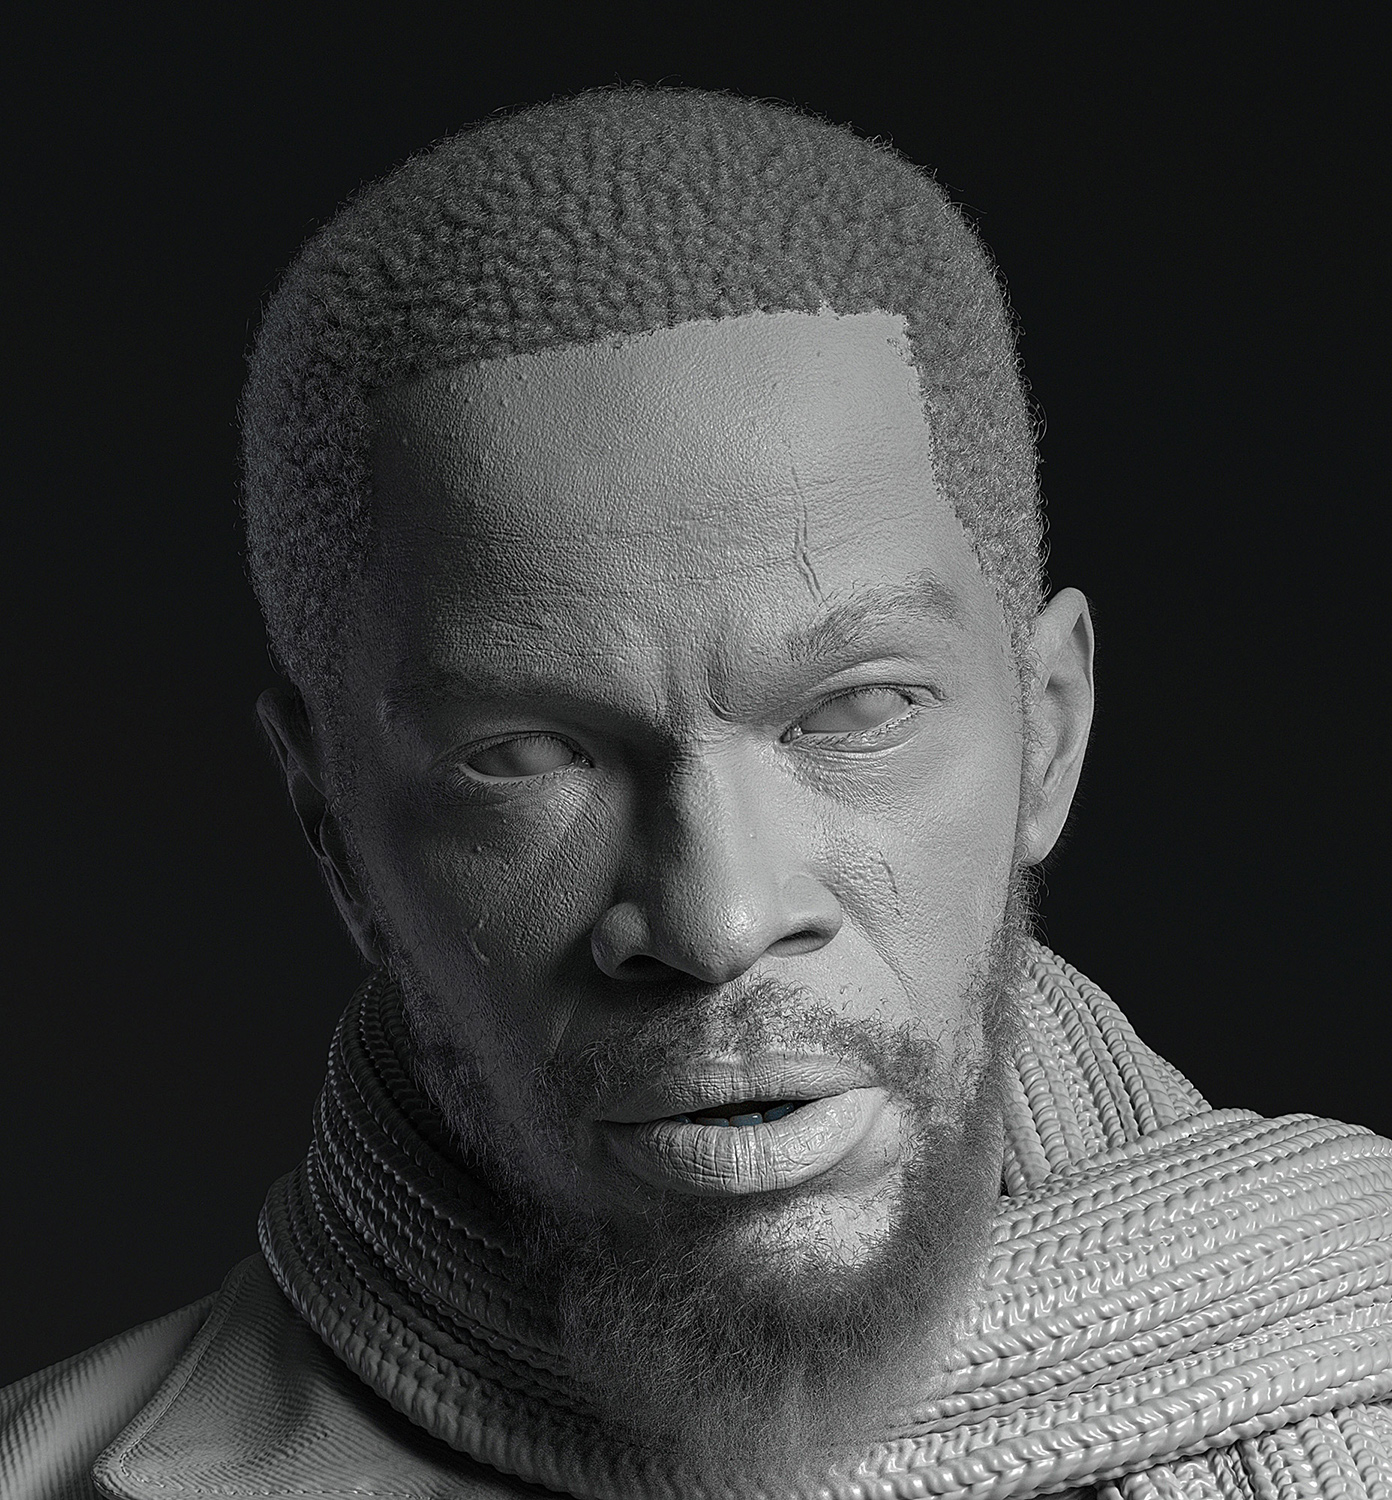 django_final_head03.jpg